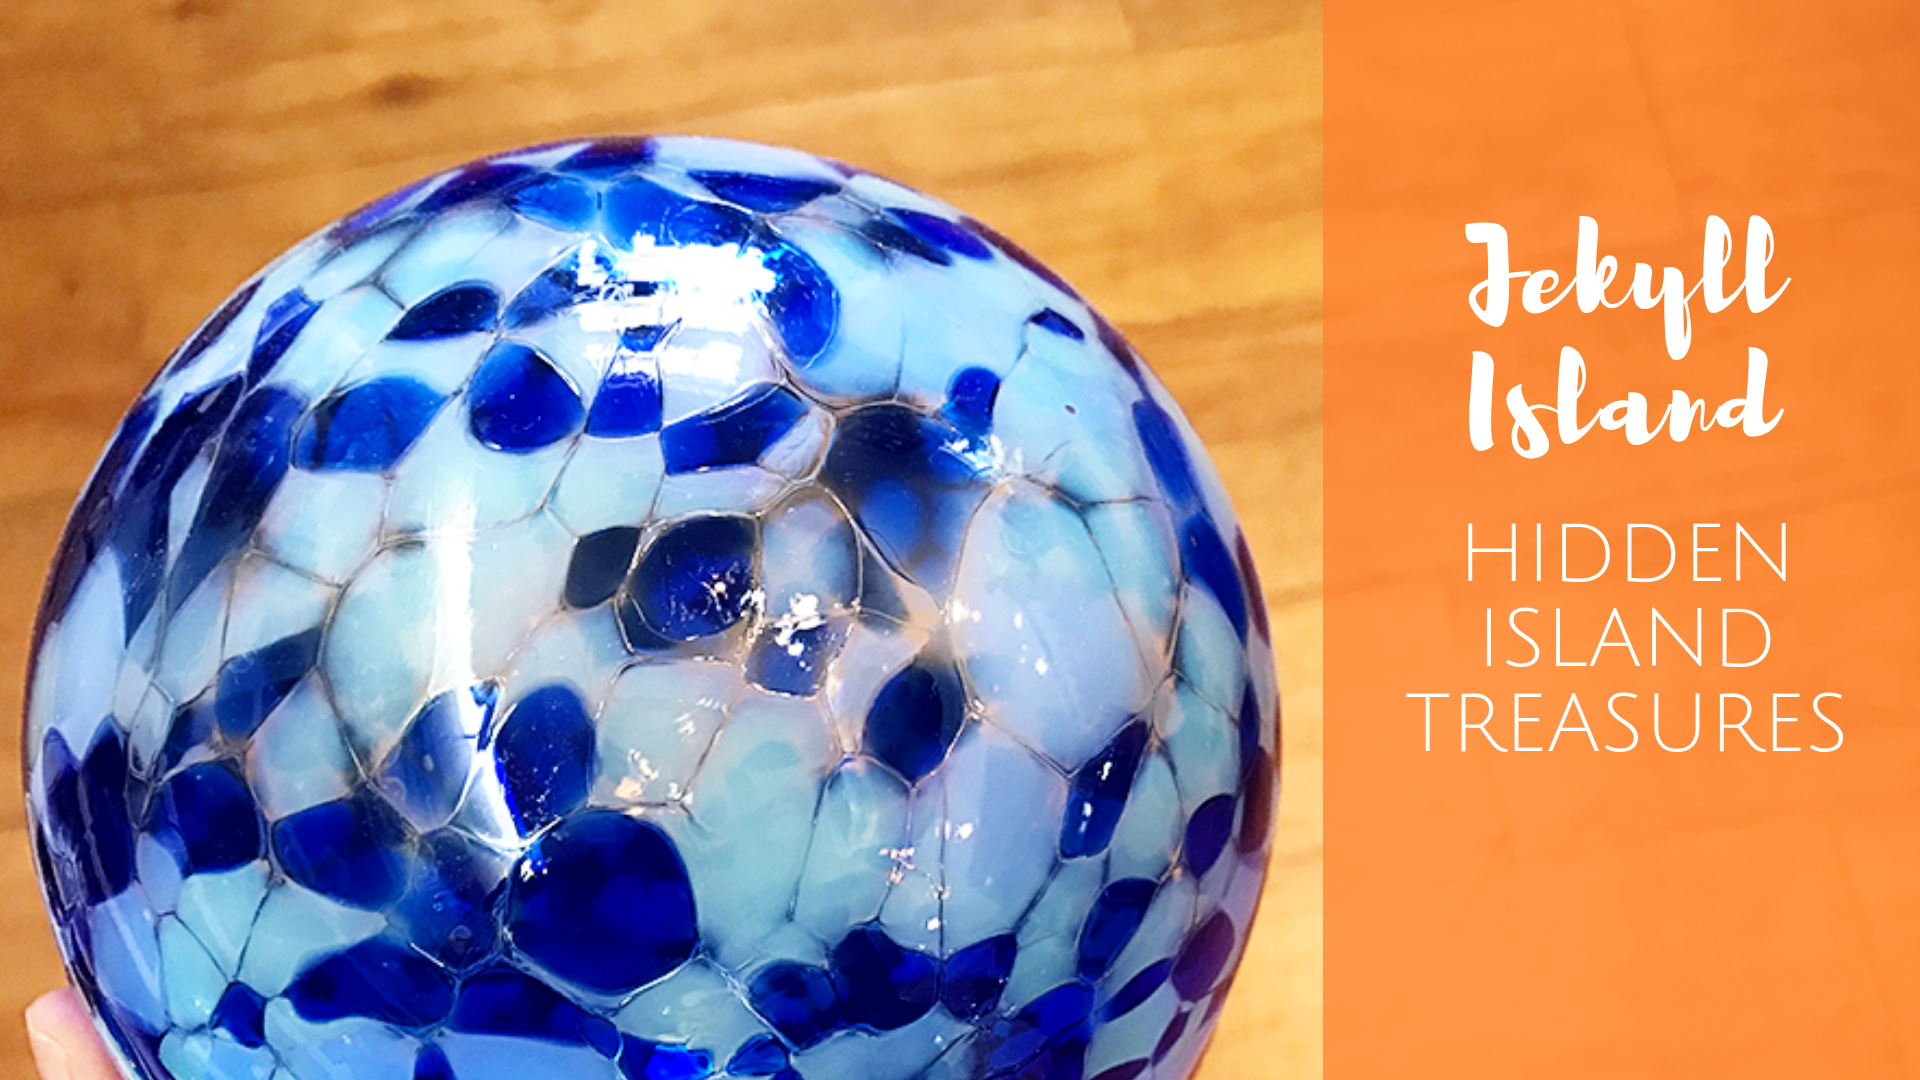 Jekyll Island Hidden Treasures - a real treasure hunt for glass floats in Georgia!